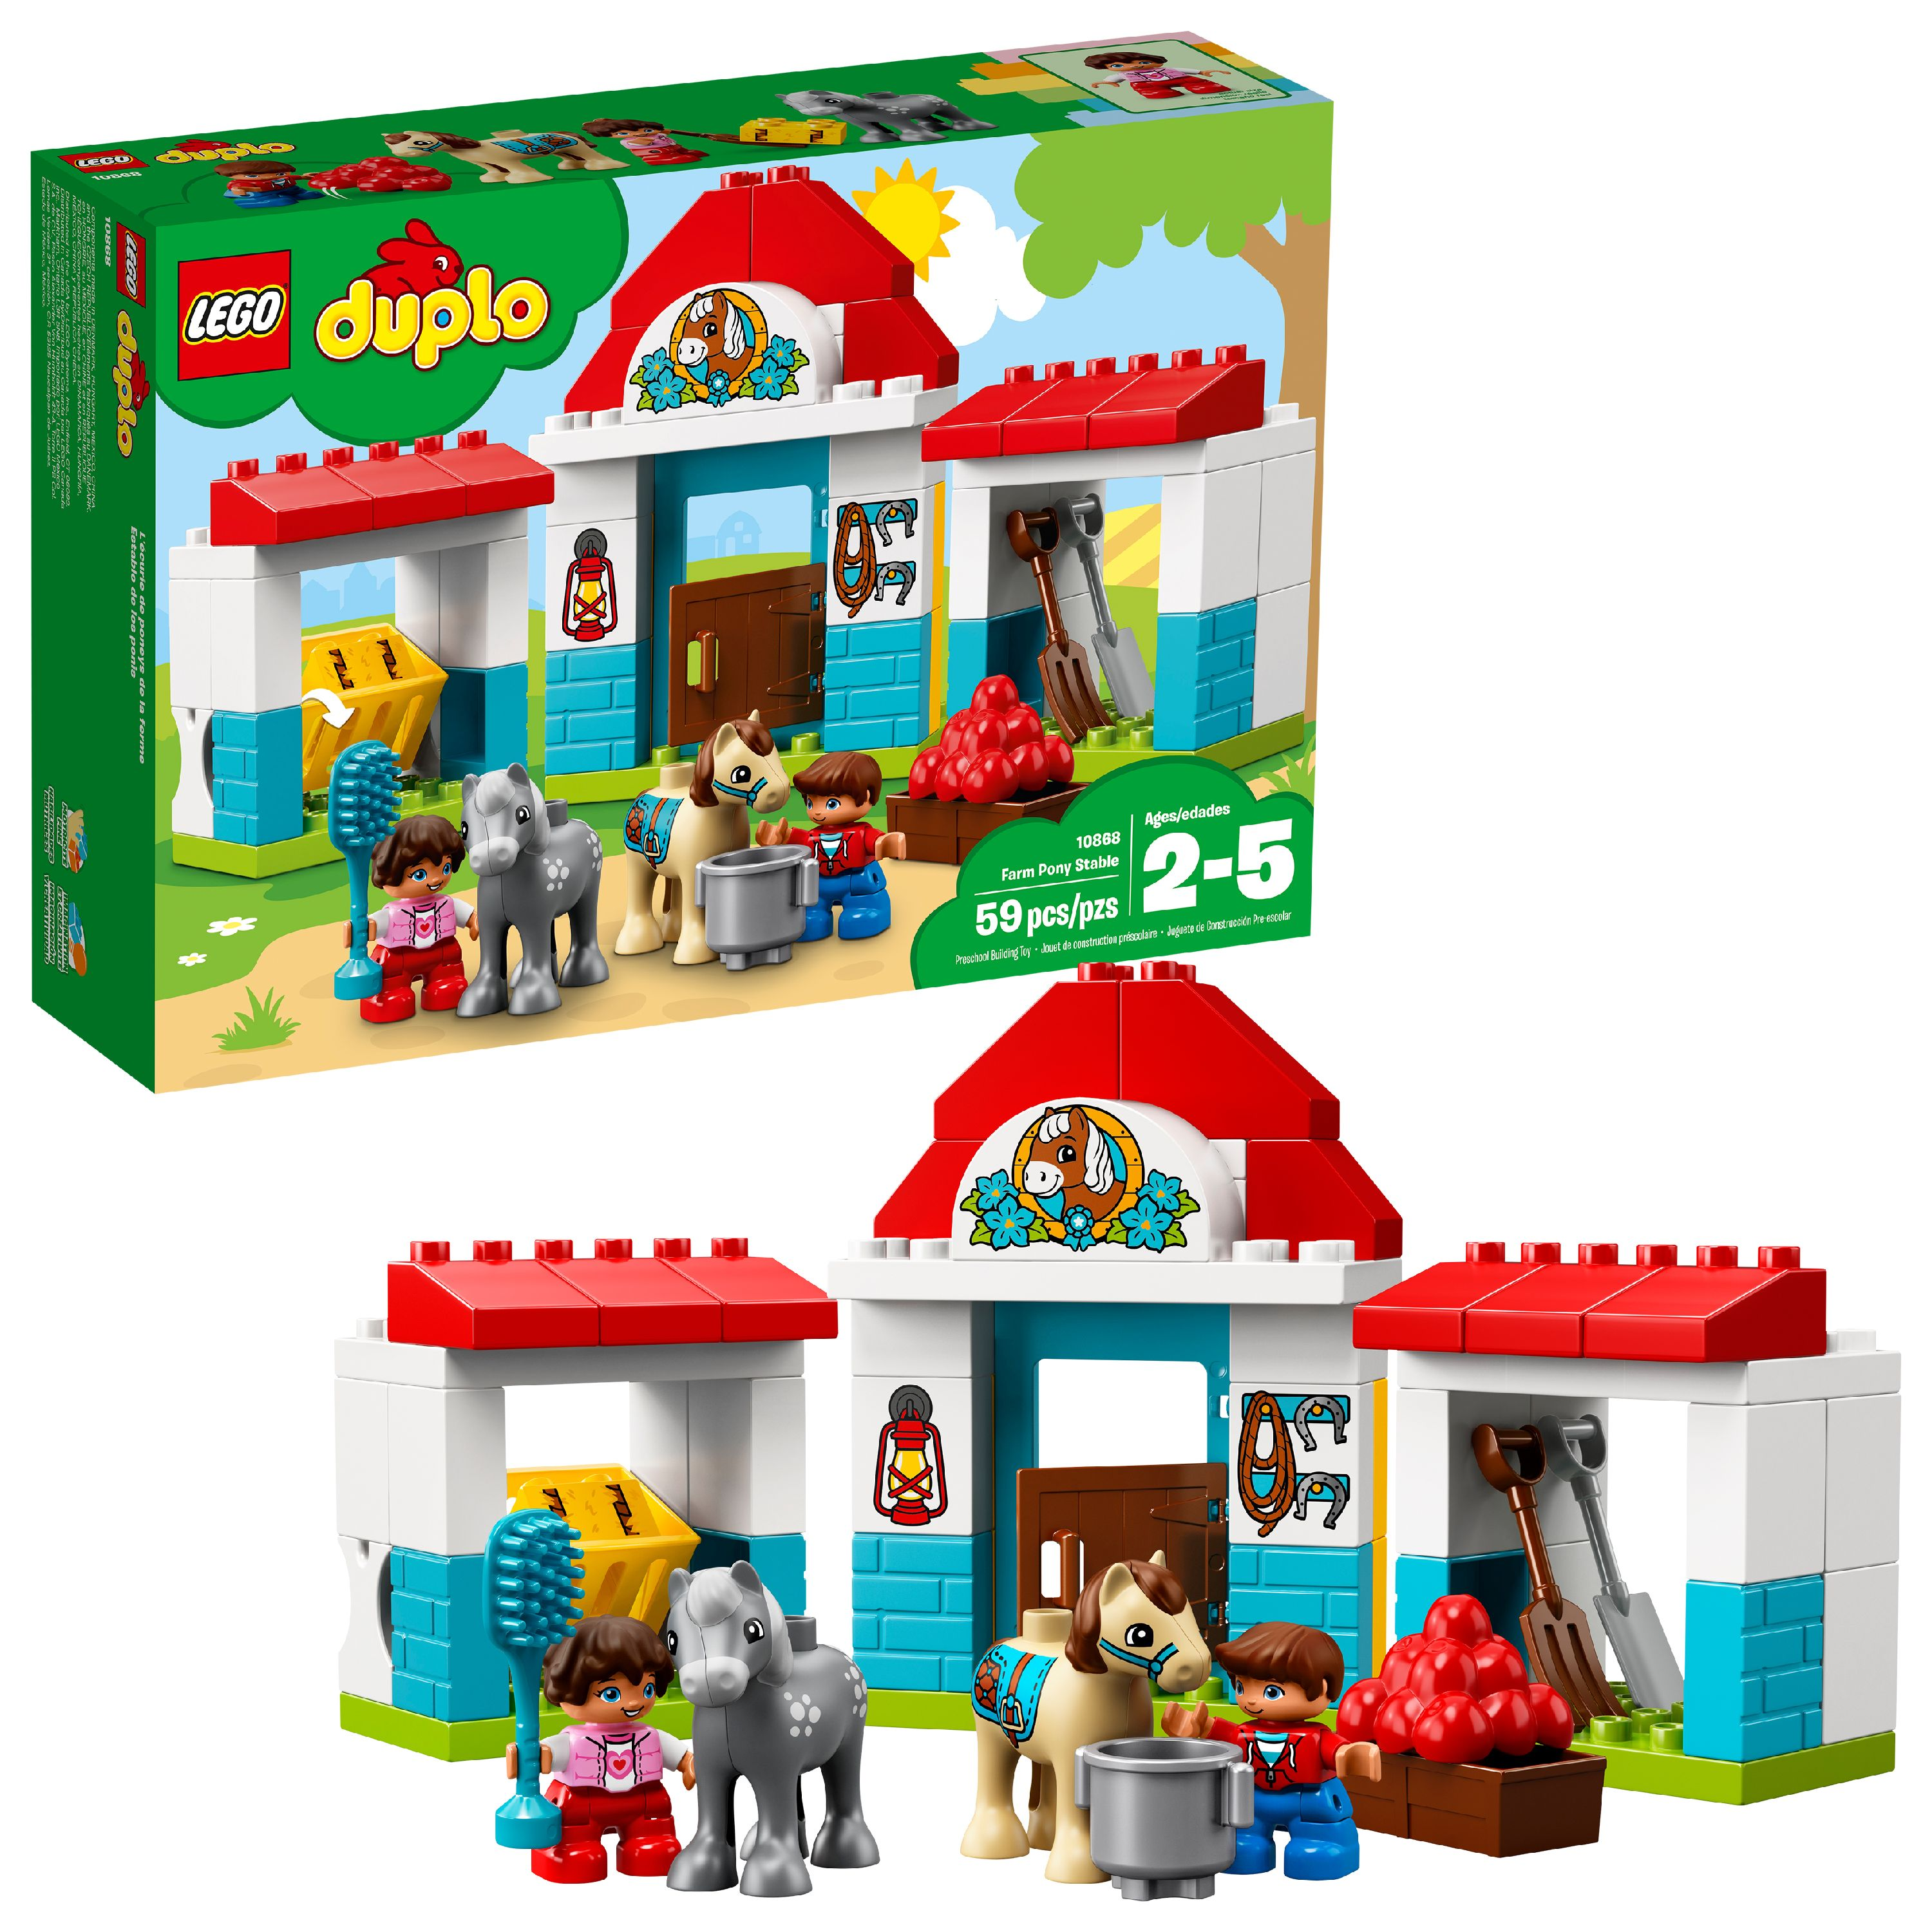 LEGO DUPLO Town Farm Pony Stable 10868 (59 Pieces)